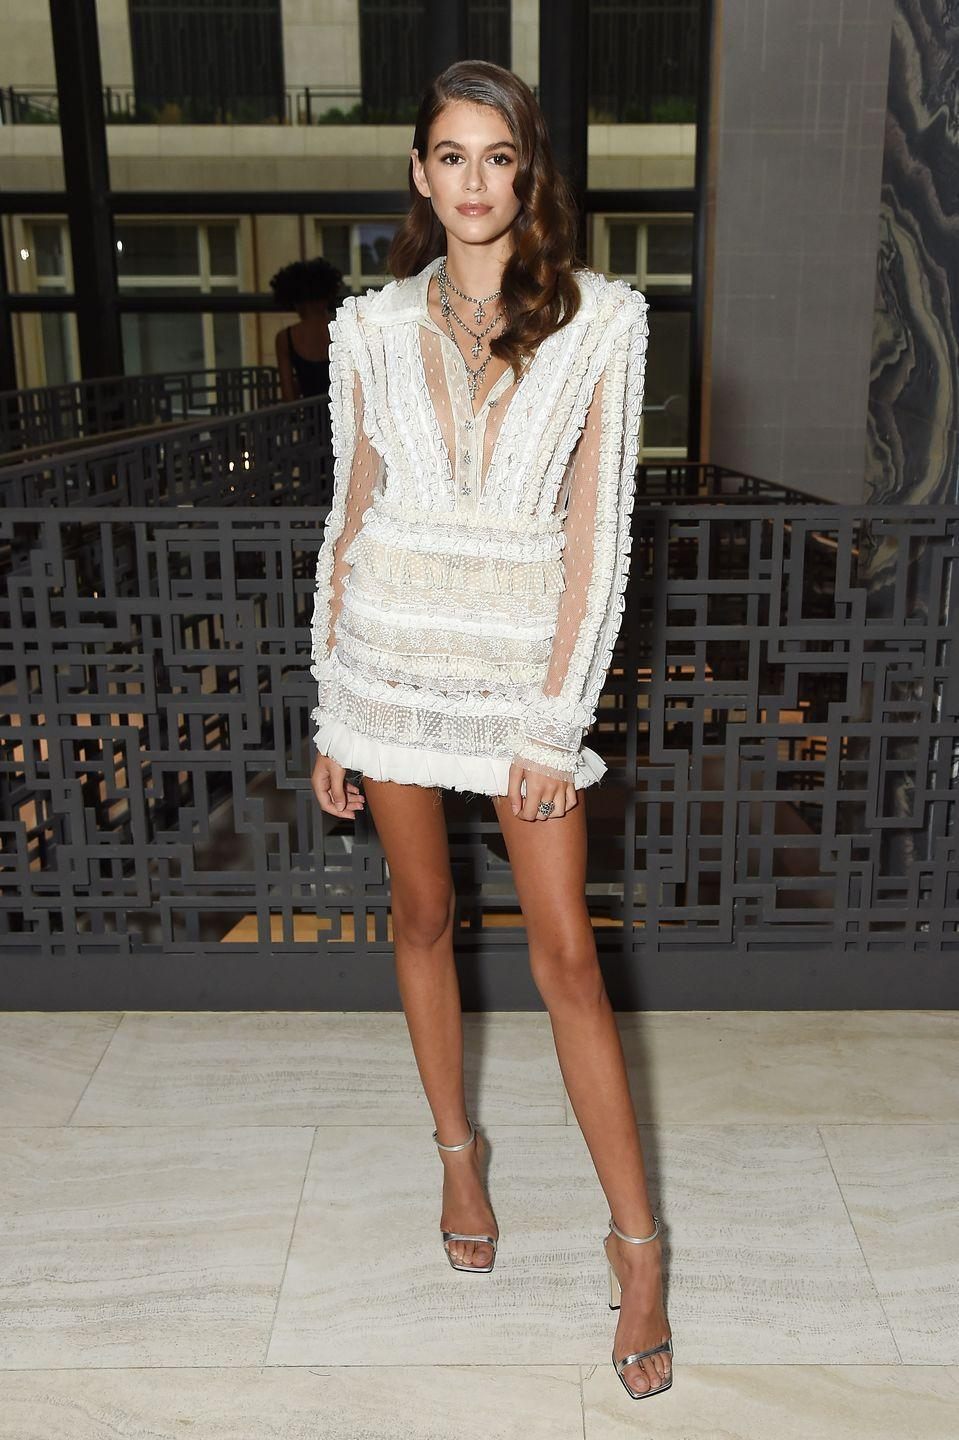 <p>Gerber looked dazzling in a white sleeved mini dress by Philosophy di Lorenzo Serafini for the Daily Front Row's Fashion Media Awards </p>